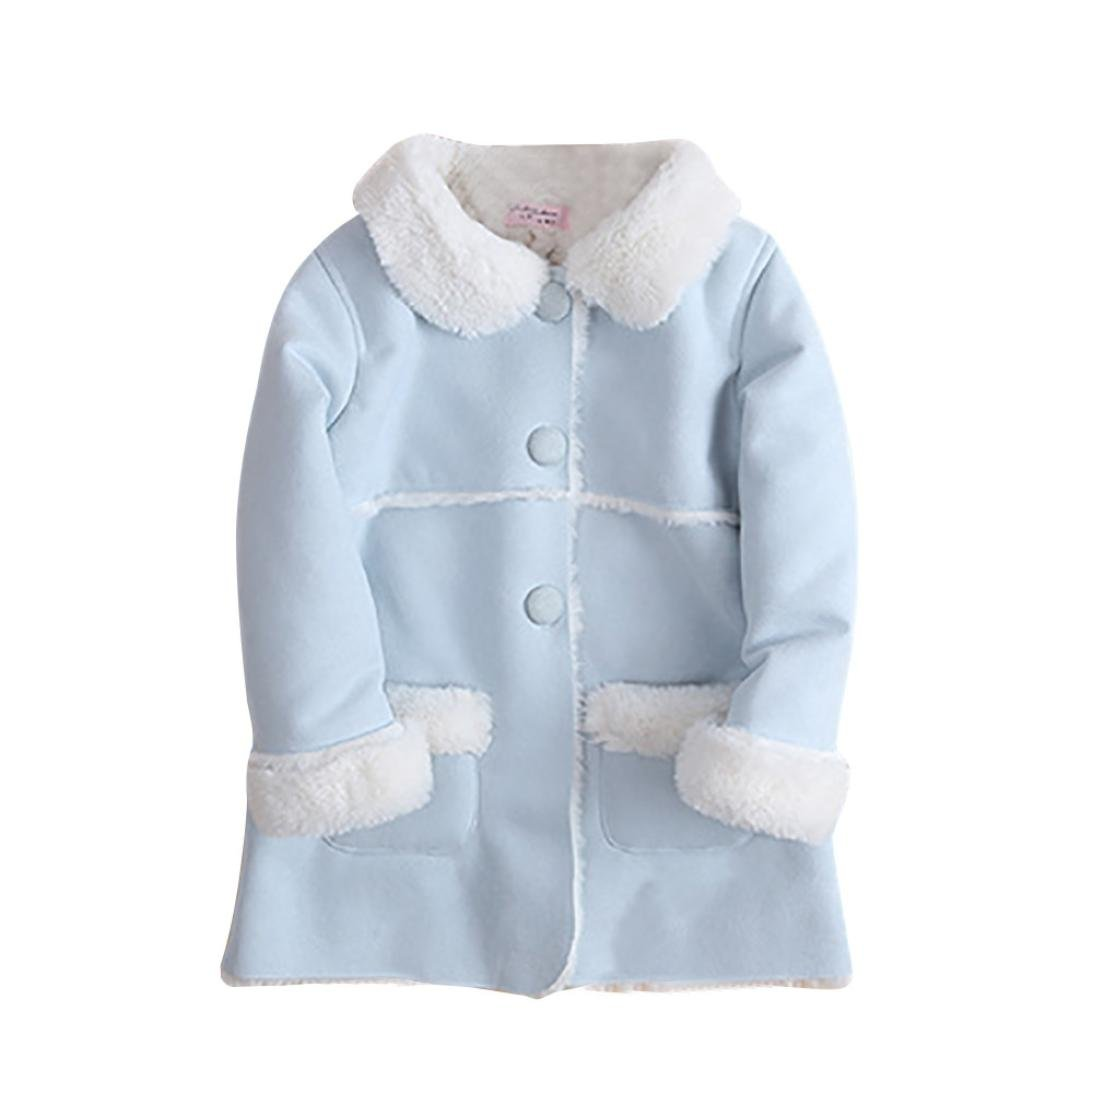 Franterd Baby Girls Winter Jacket Fur Collar Solid Warm Winter Thickening Fur Inside Coats (Blue, 3T) by Franterd (Image #6)